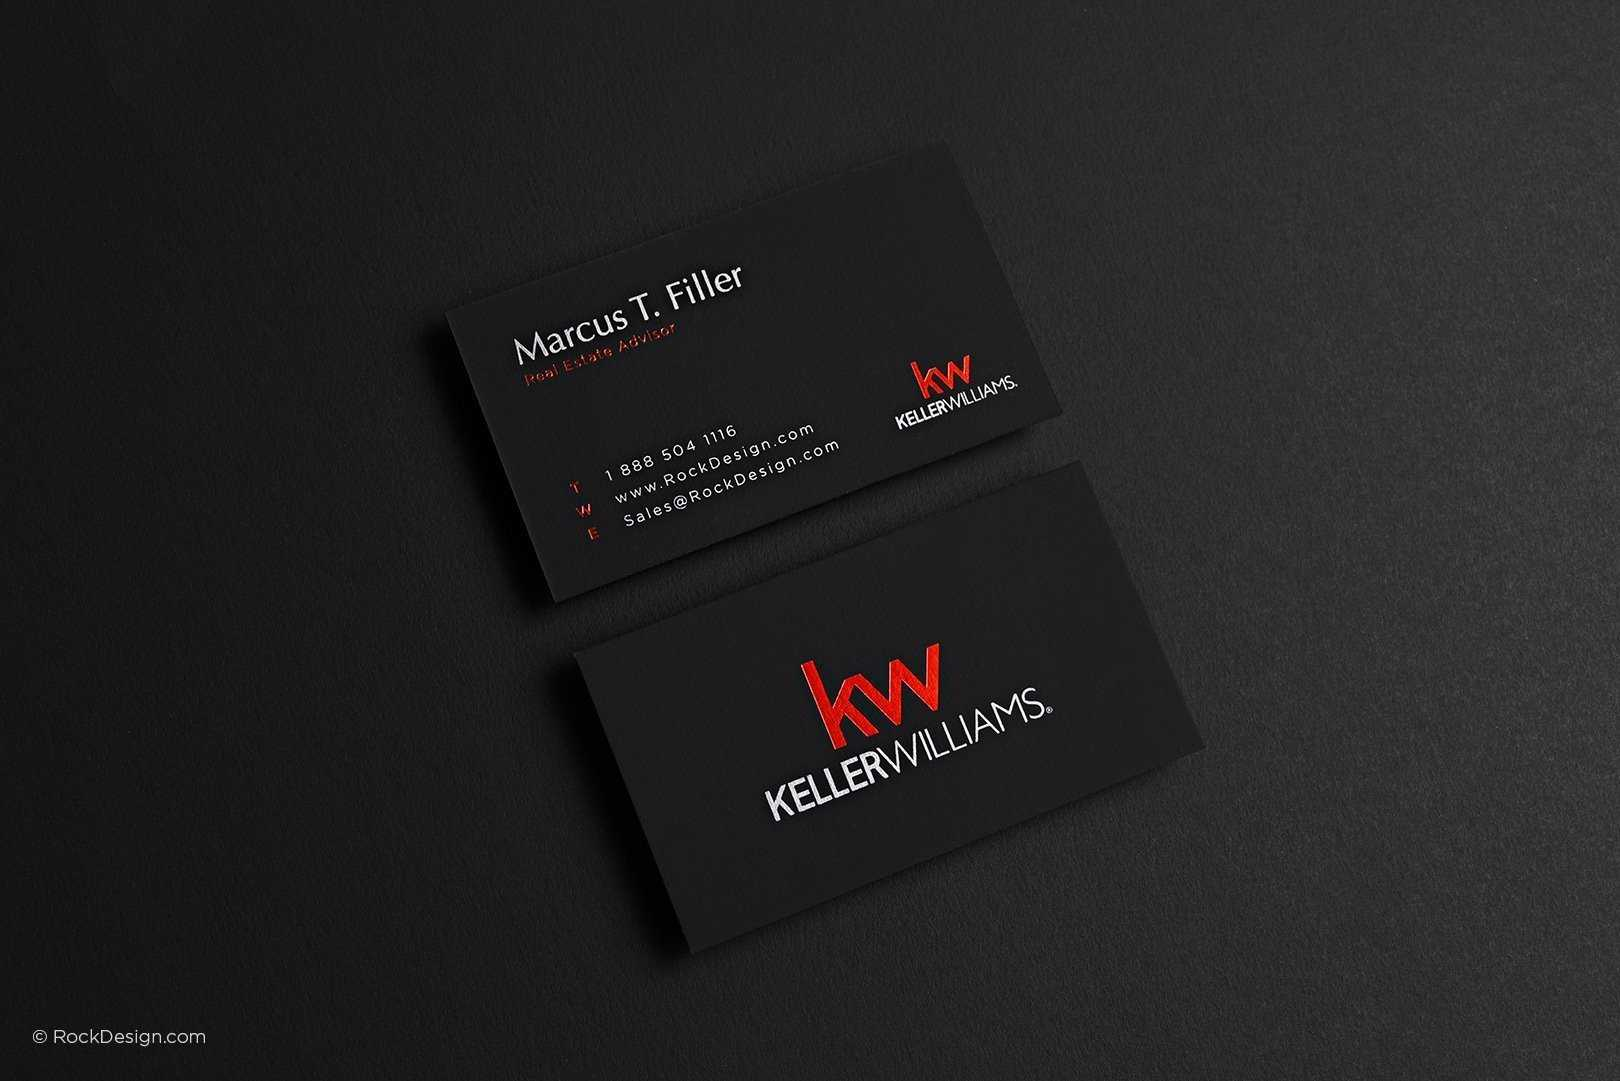 Keller Williams Business Card Throughout Keller Williams Business Card Templates